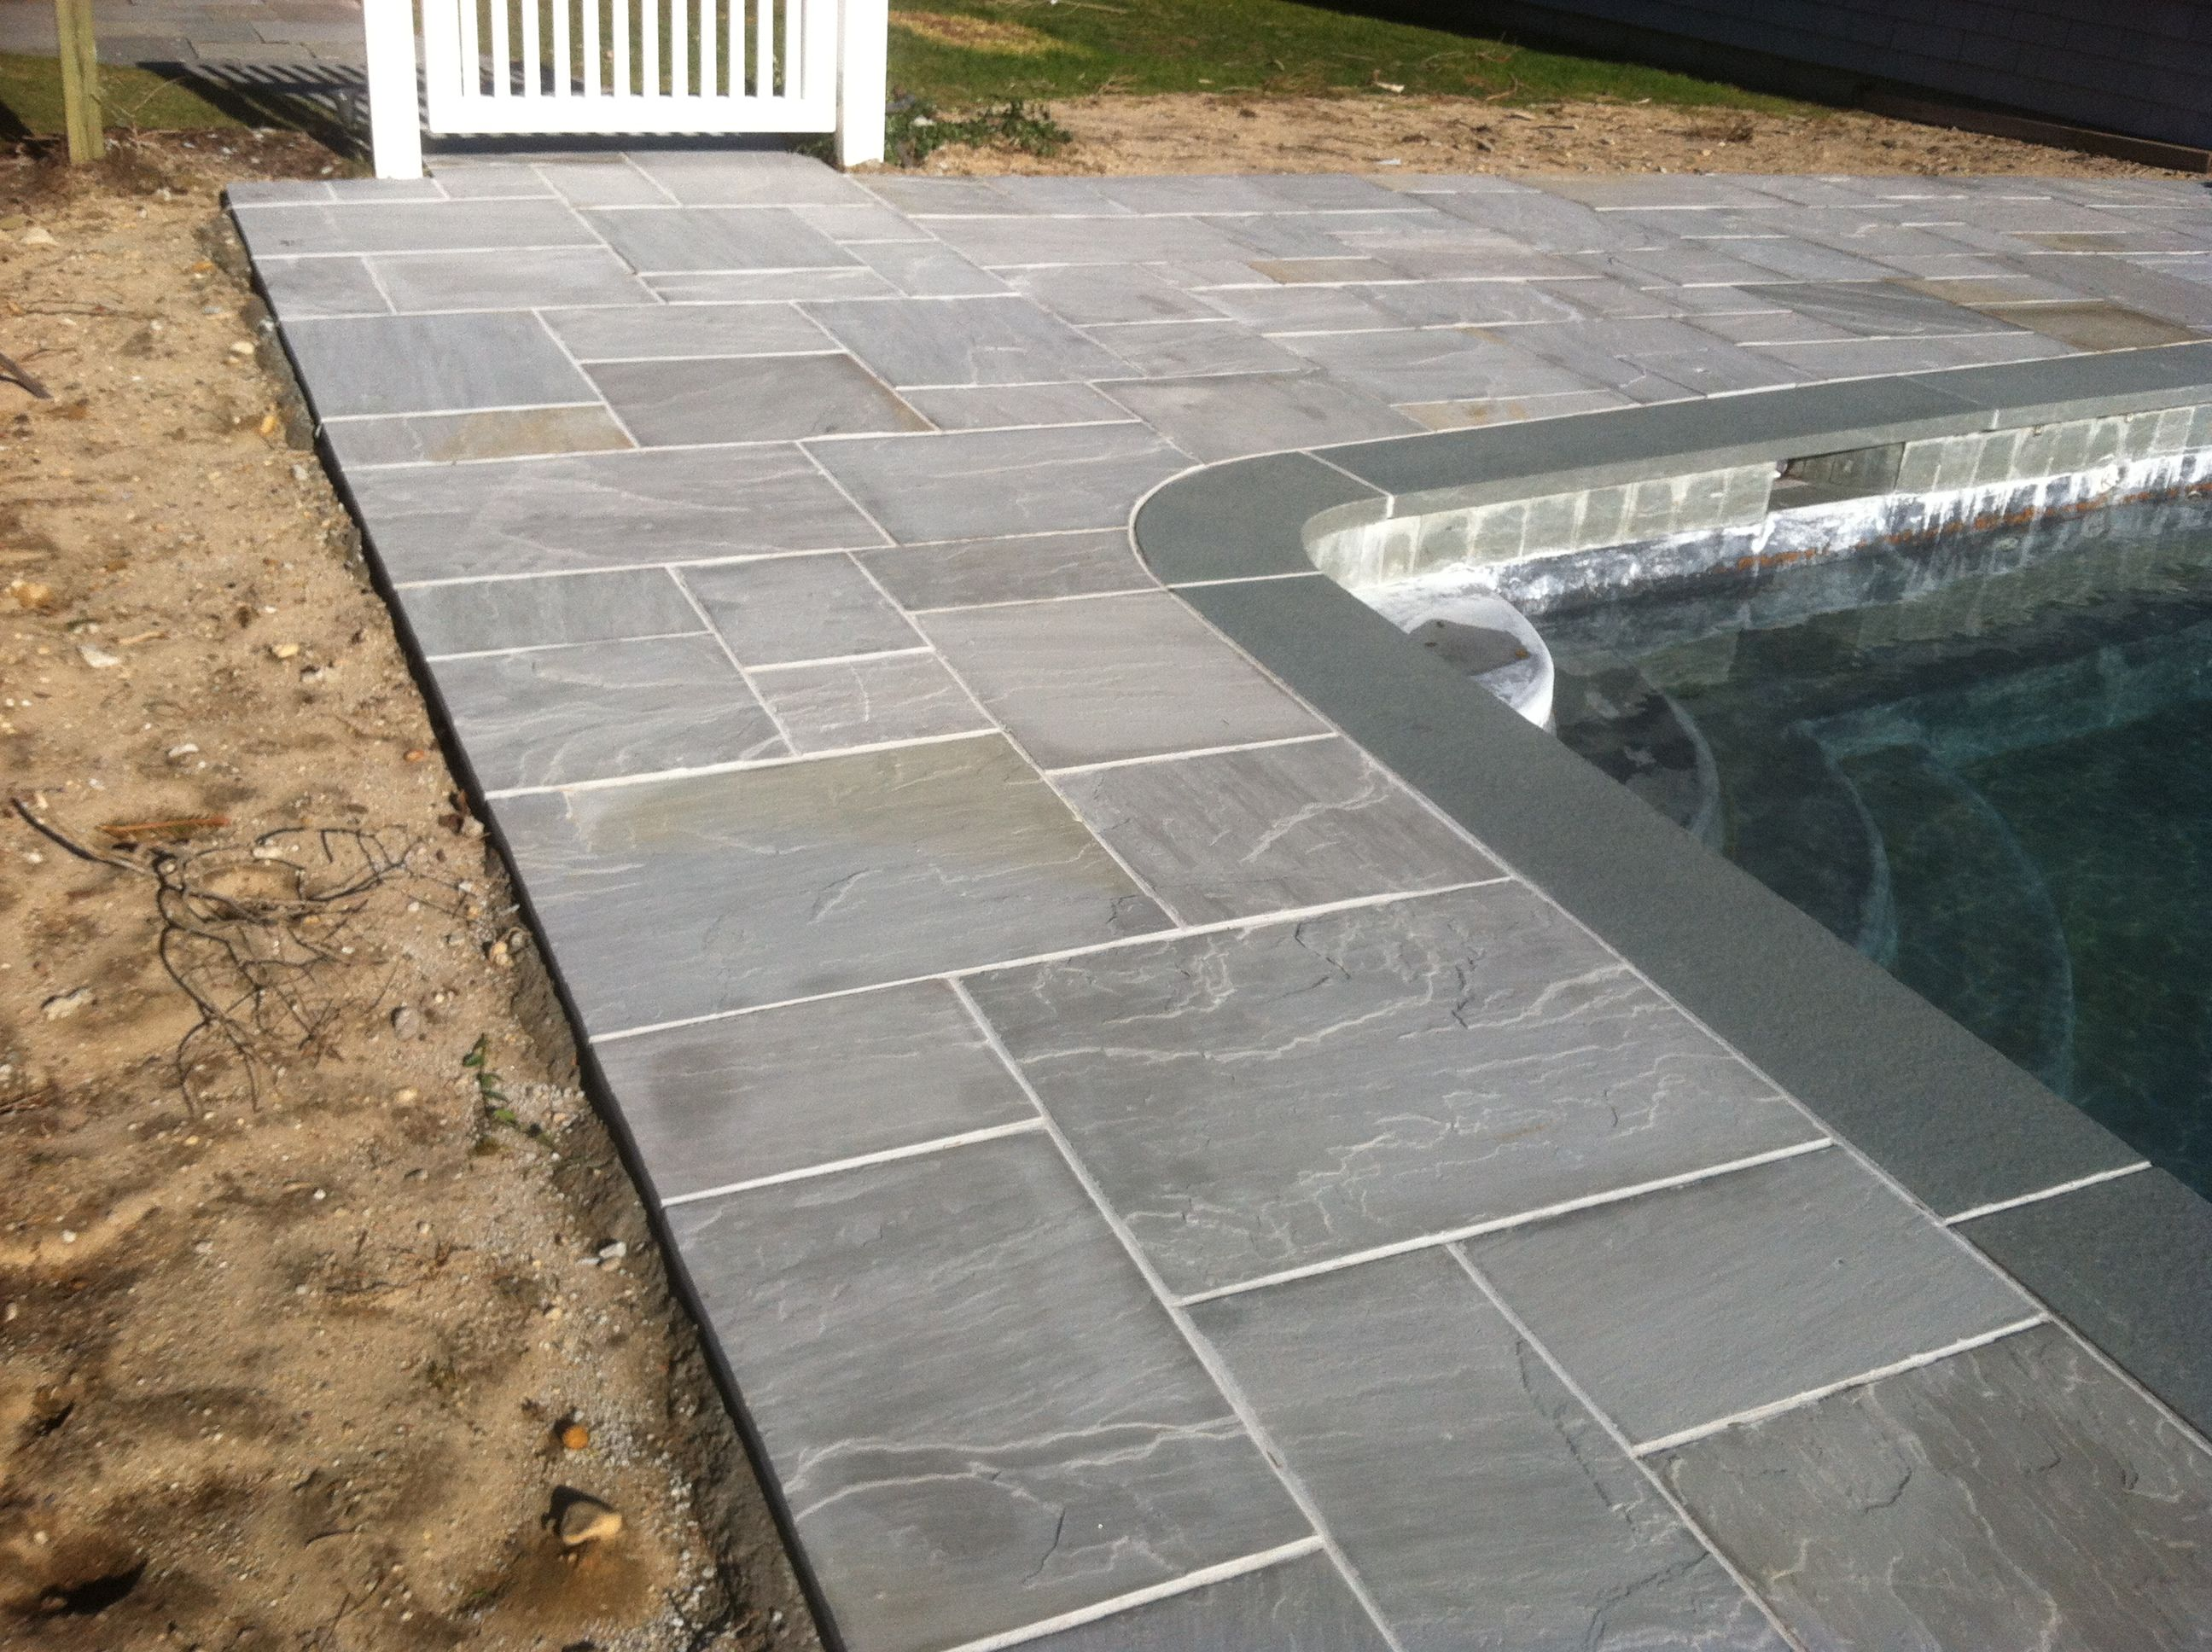 U201cBlue Iceu201d Bluestone Patio Replacement In Quogue, NY